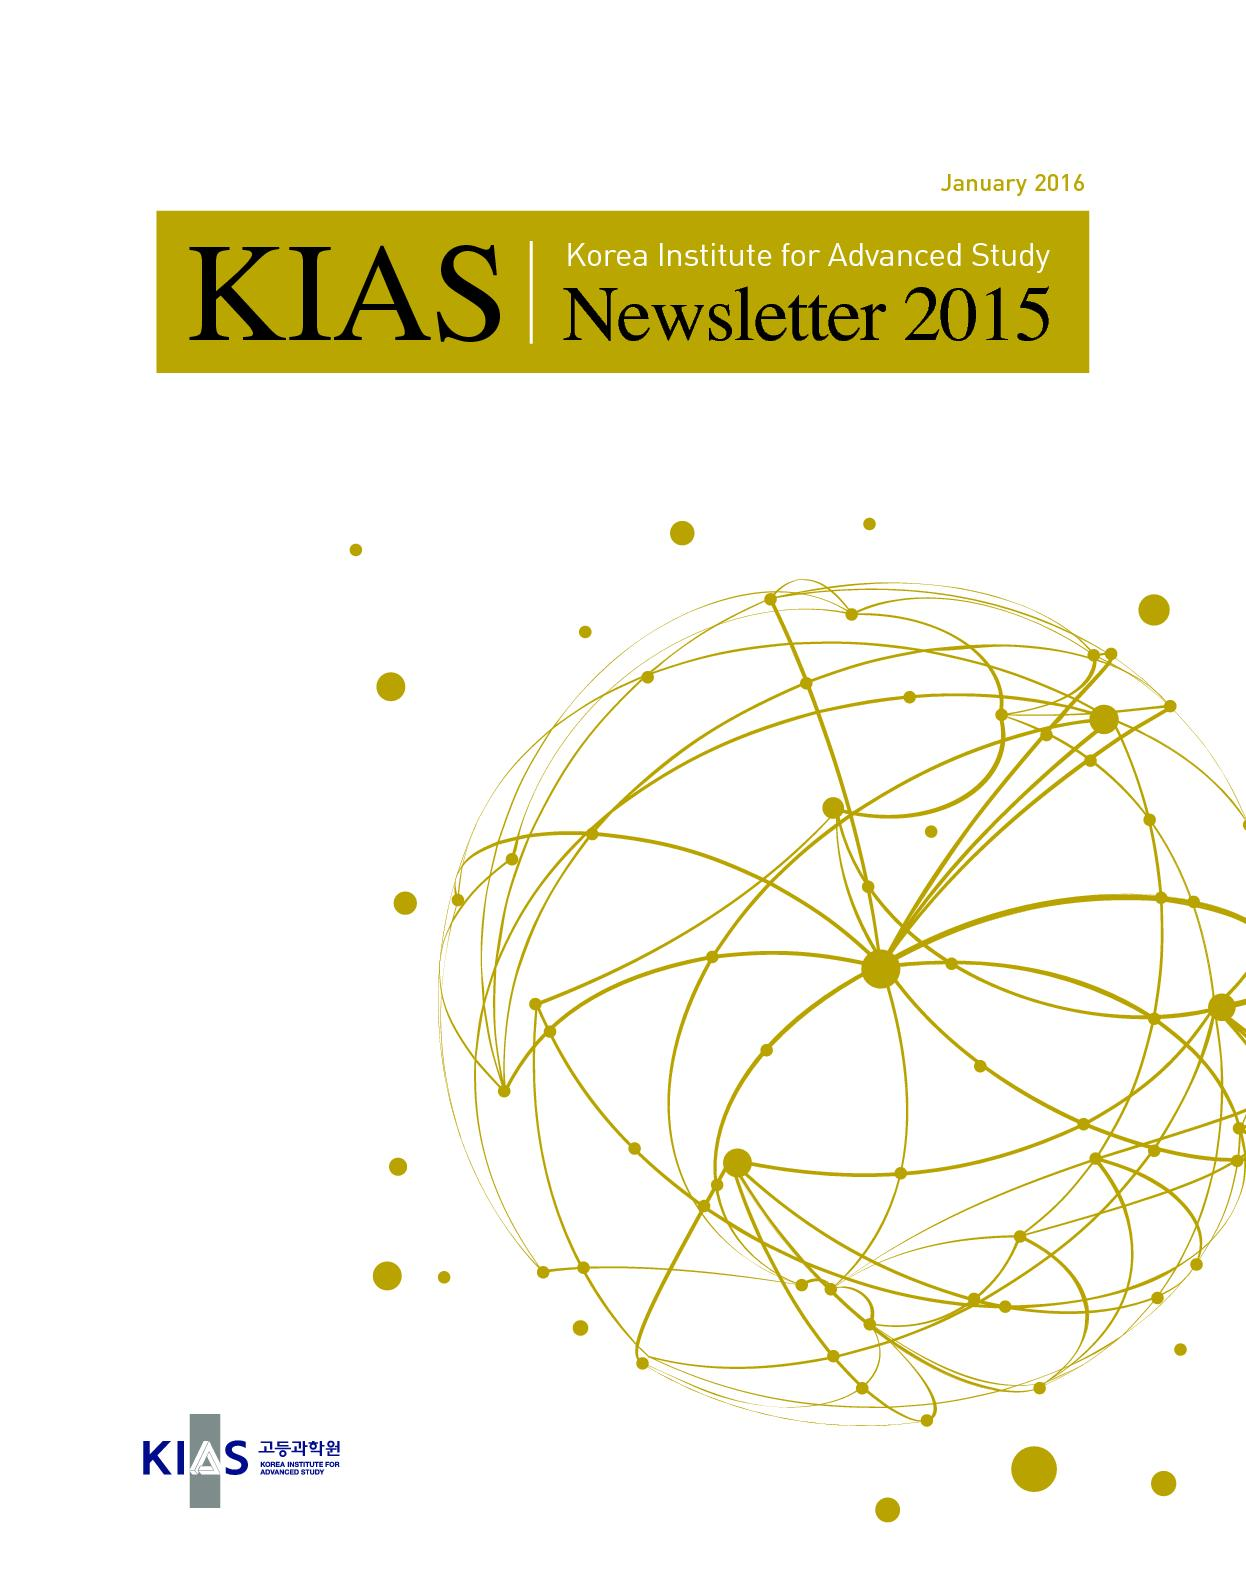 KIAS Newsletter